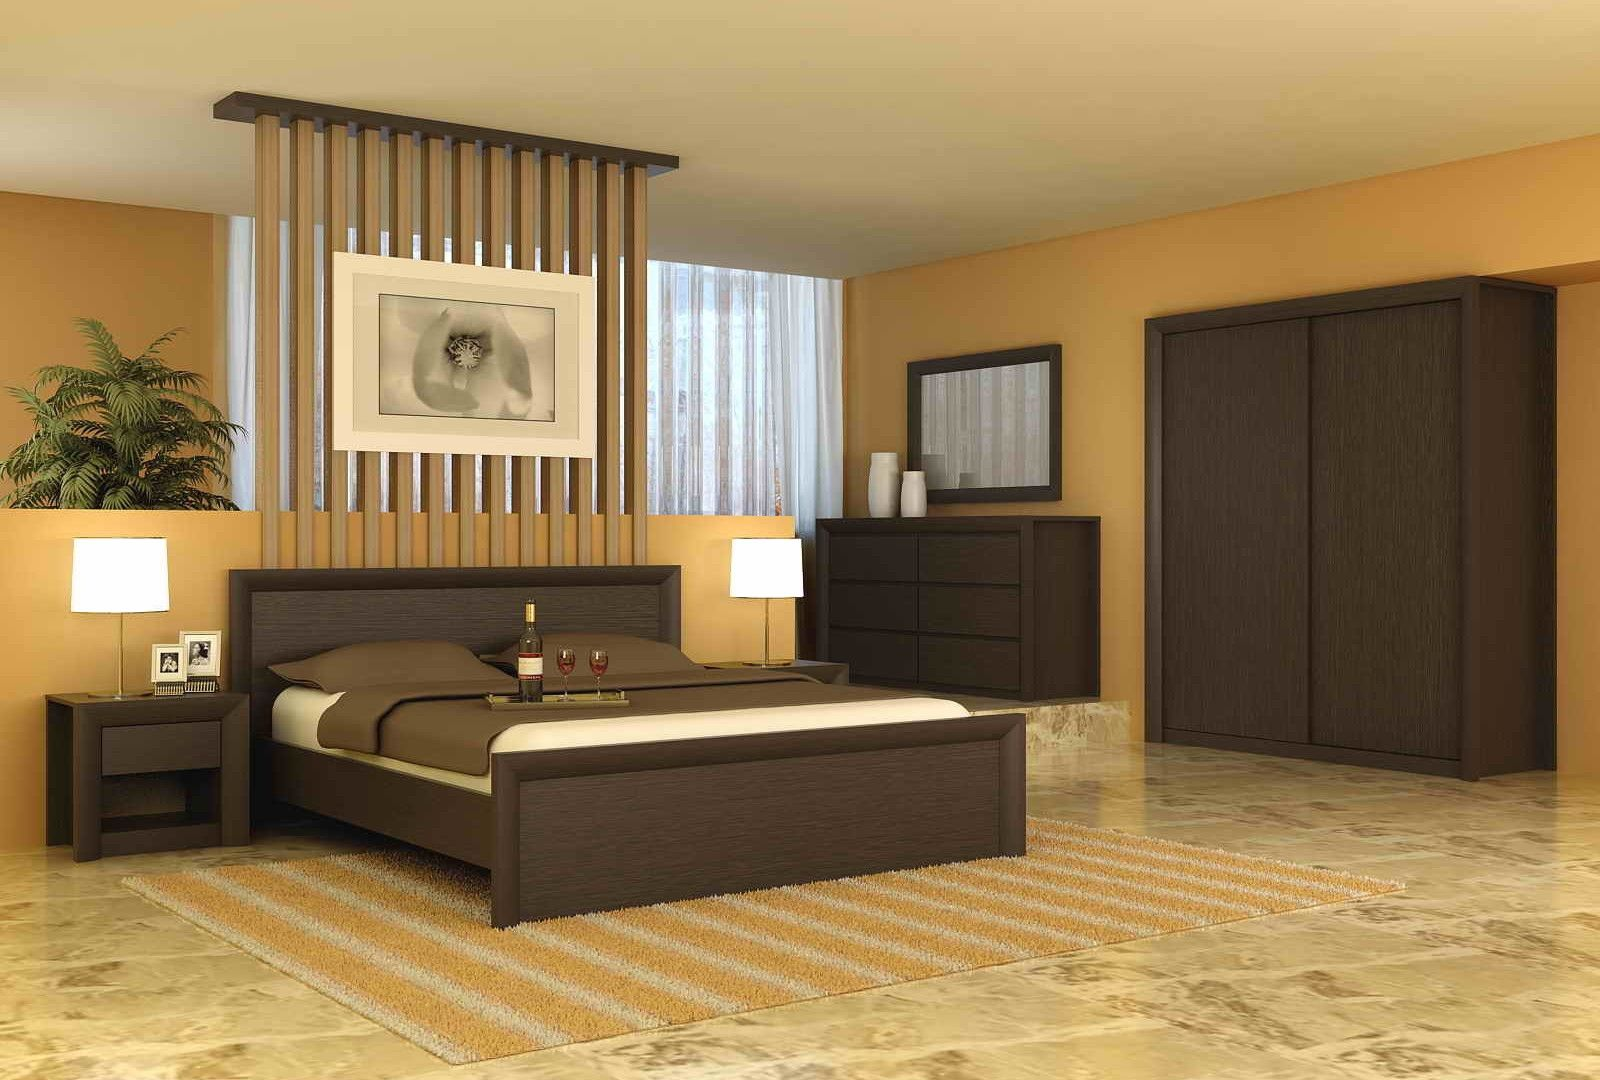 Bedroom Decorating Ideas Cream Walls simple bedroom wall wardrobe design simple modern bedroom